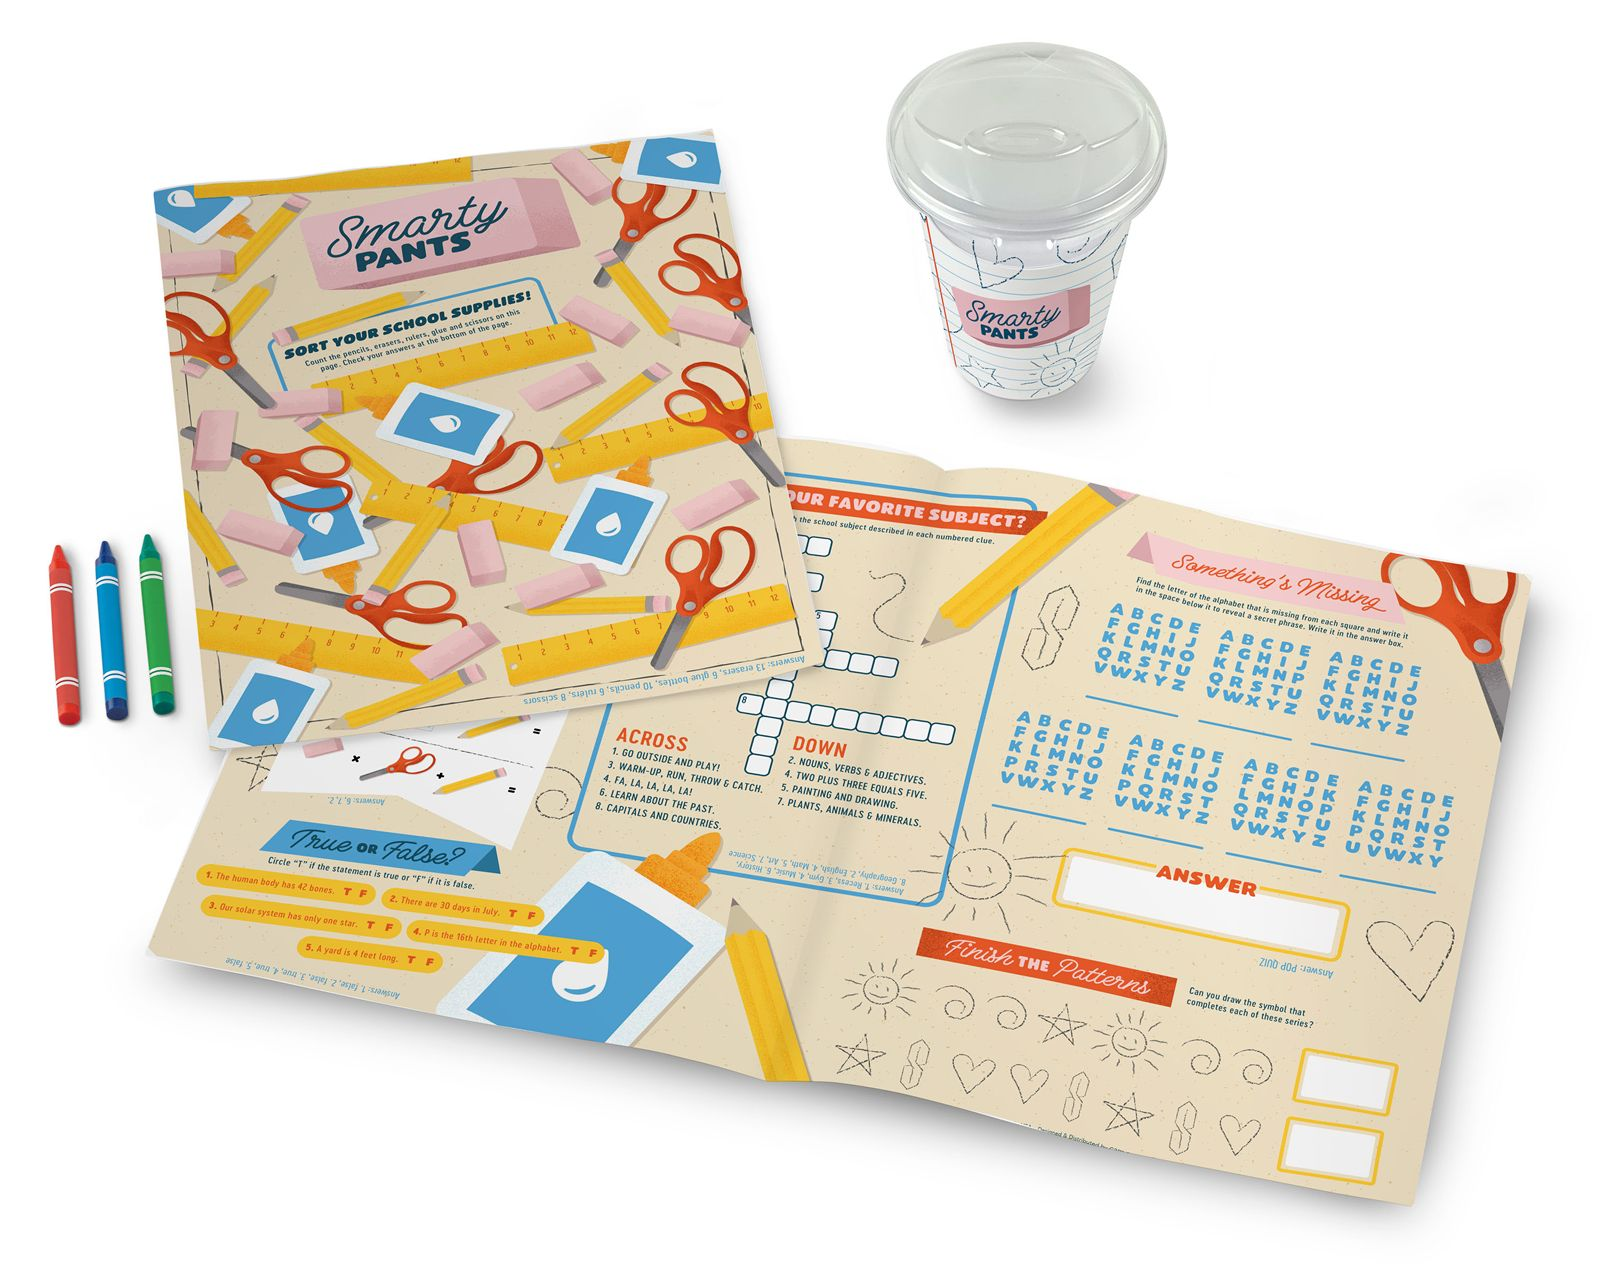 C3 // Creative Consumer Concepts launches kids' meal entertainment program, prioritizing family-owned restaurants